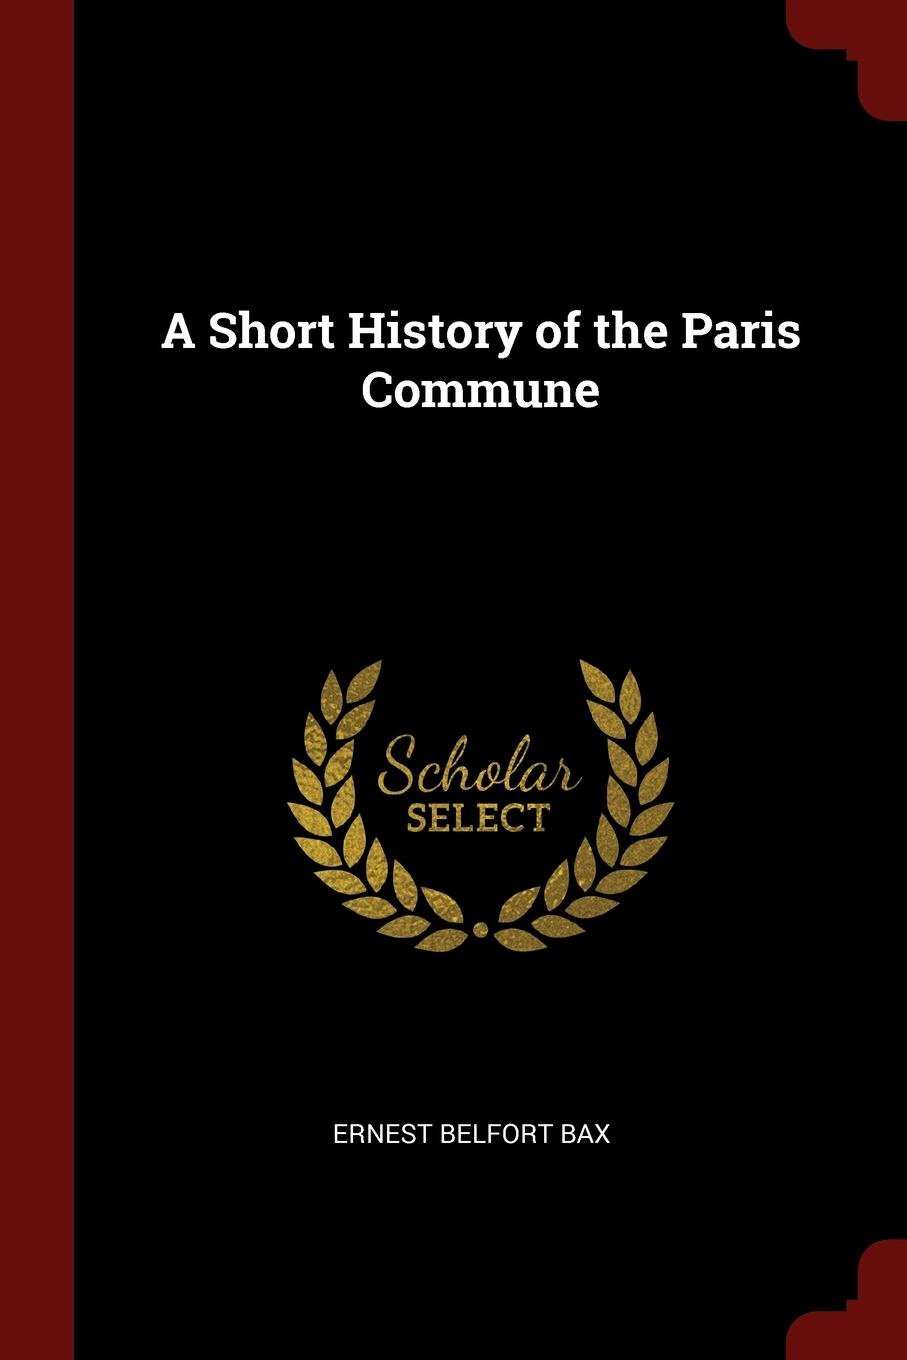 Ernest Belfort Bax A Short History of the Paris Commune